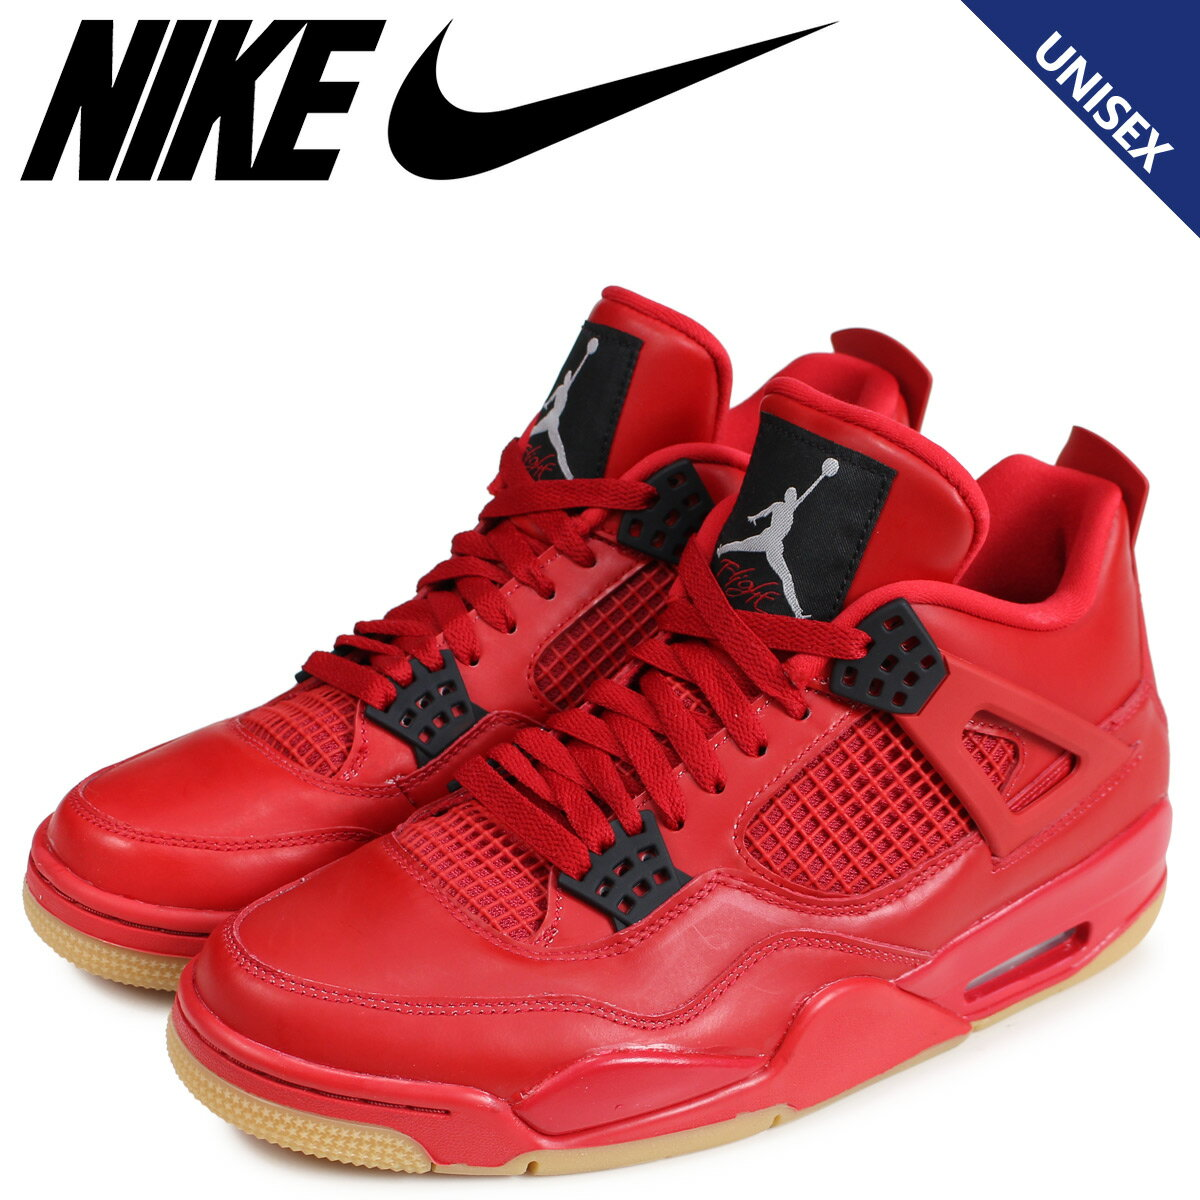 メンズ靴, スニーカー 600OFF NIKE 4 WMNS AIR JORDAN 4 RETRO NRG SINGLES DAY AV3914-600